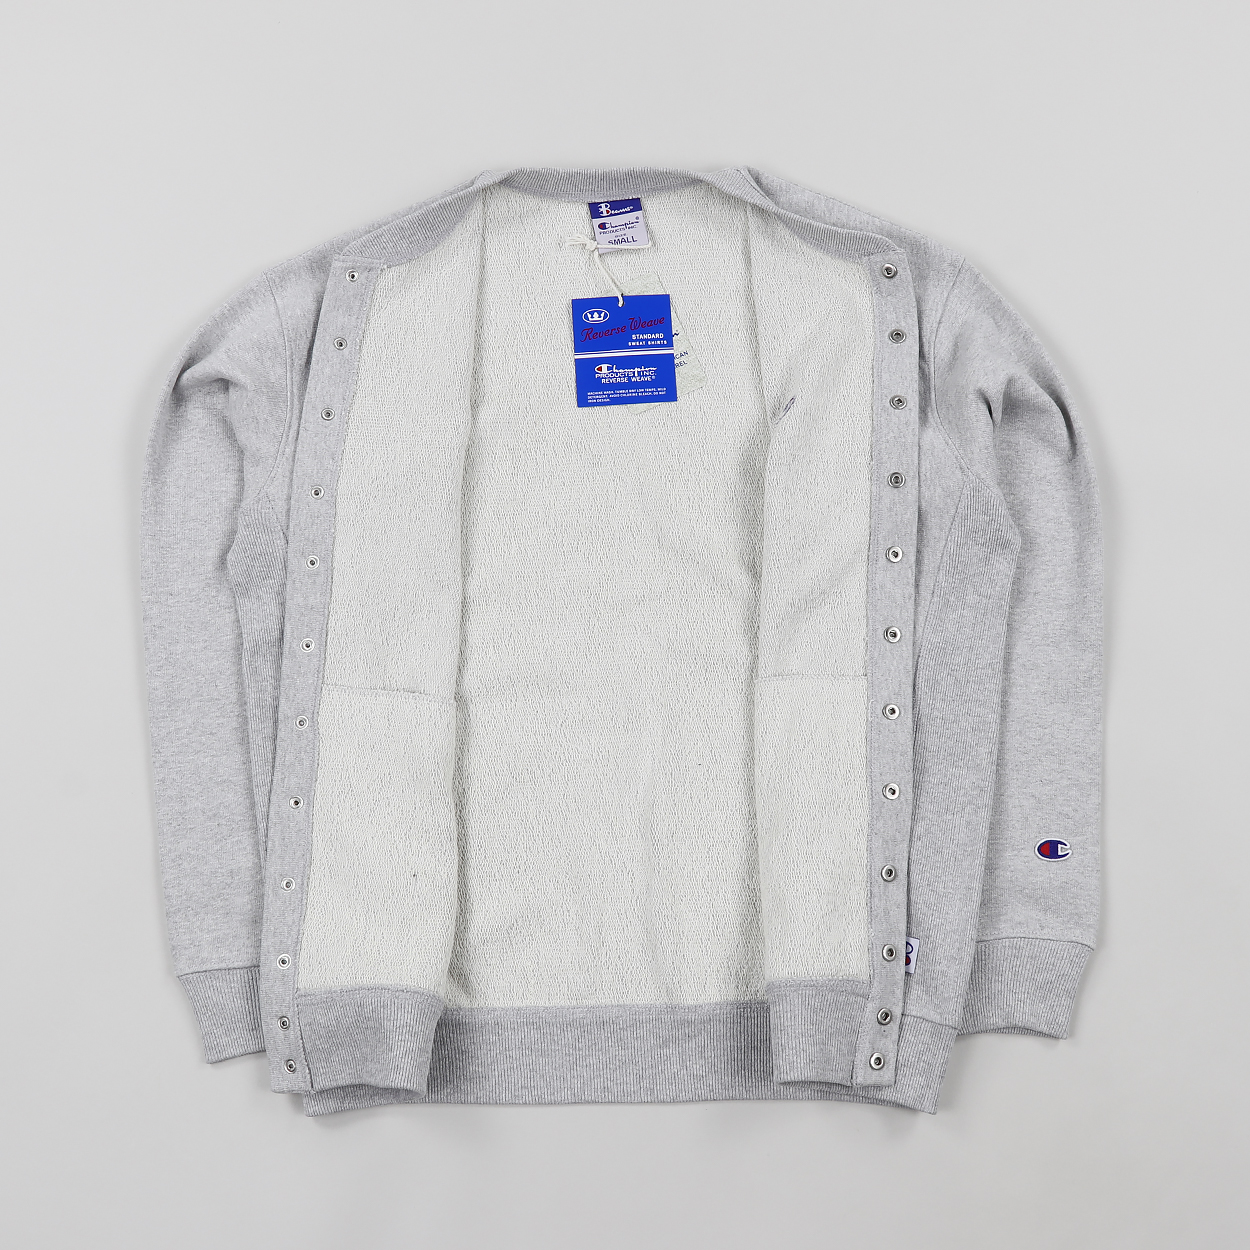 A bomber-style cardigan from Champion s collaboration with Beams. Made from  a soft ec9e7a228